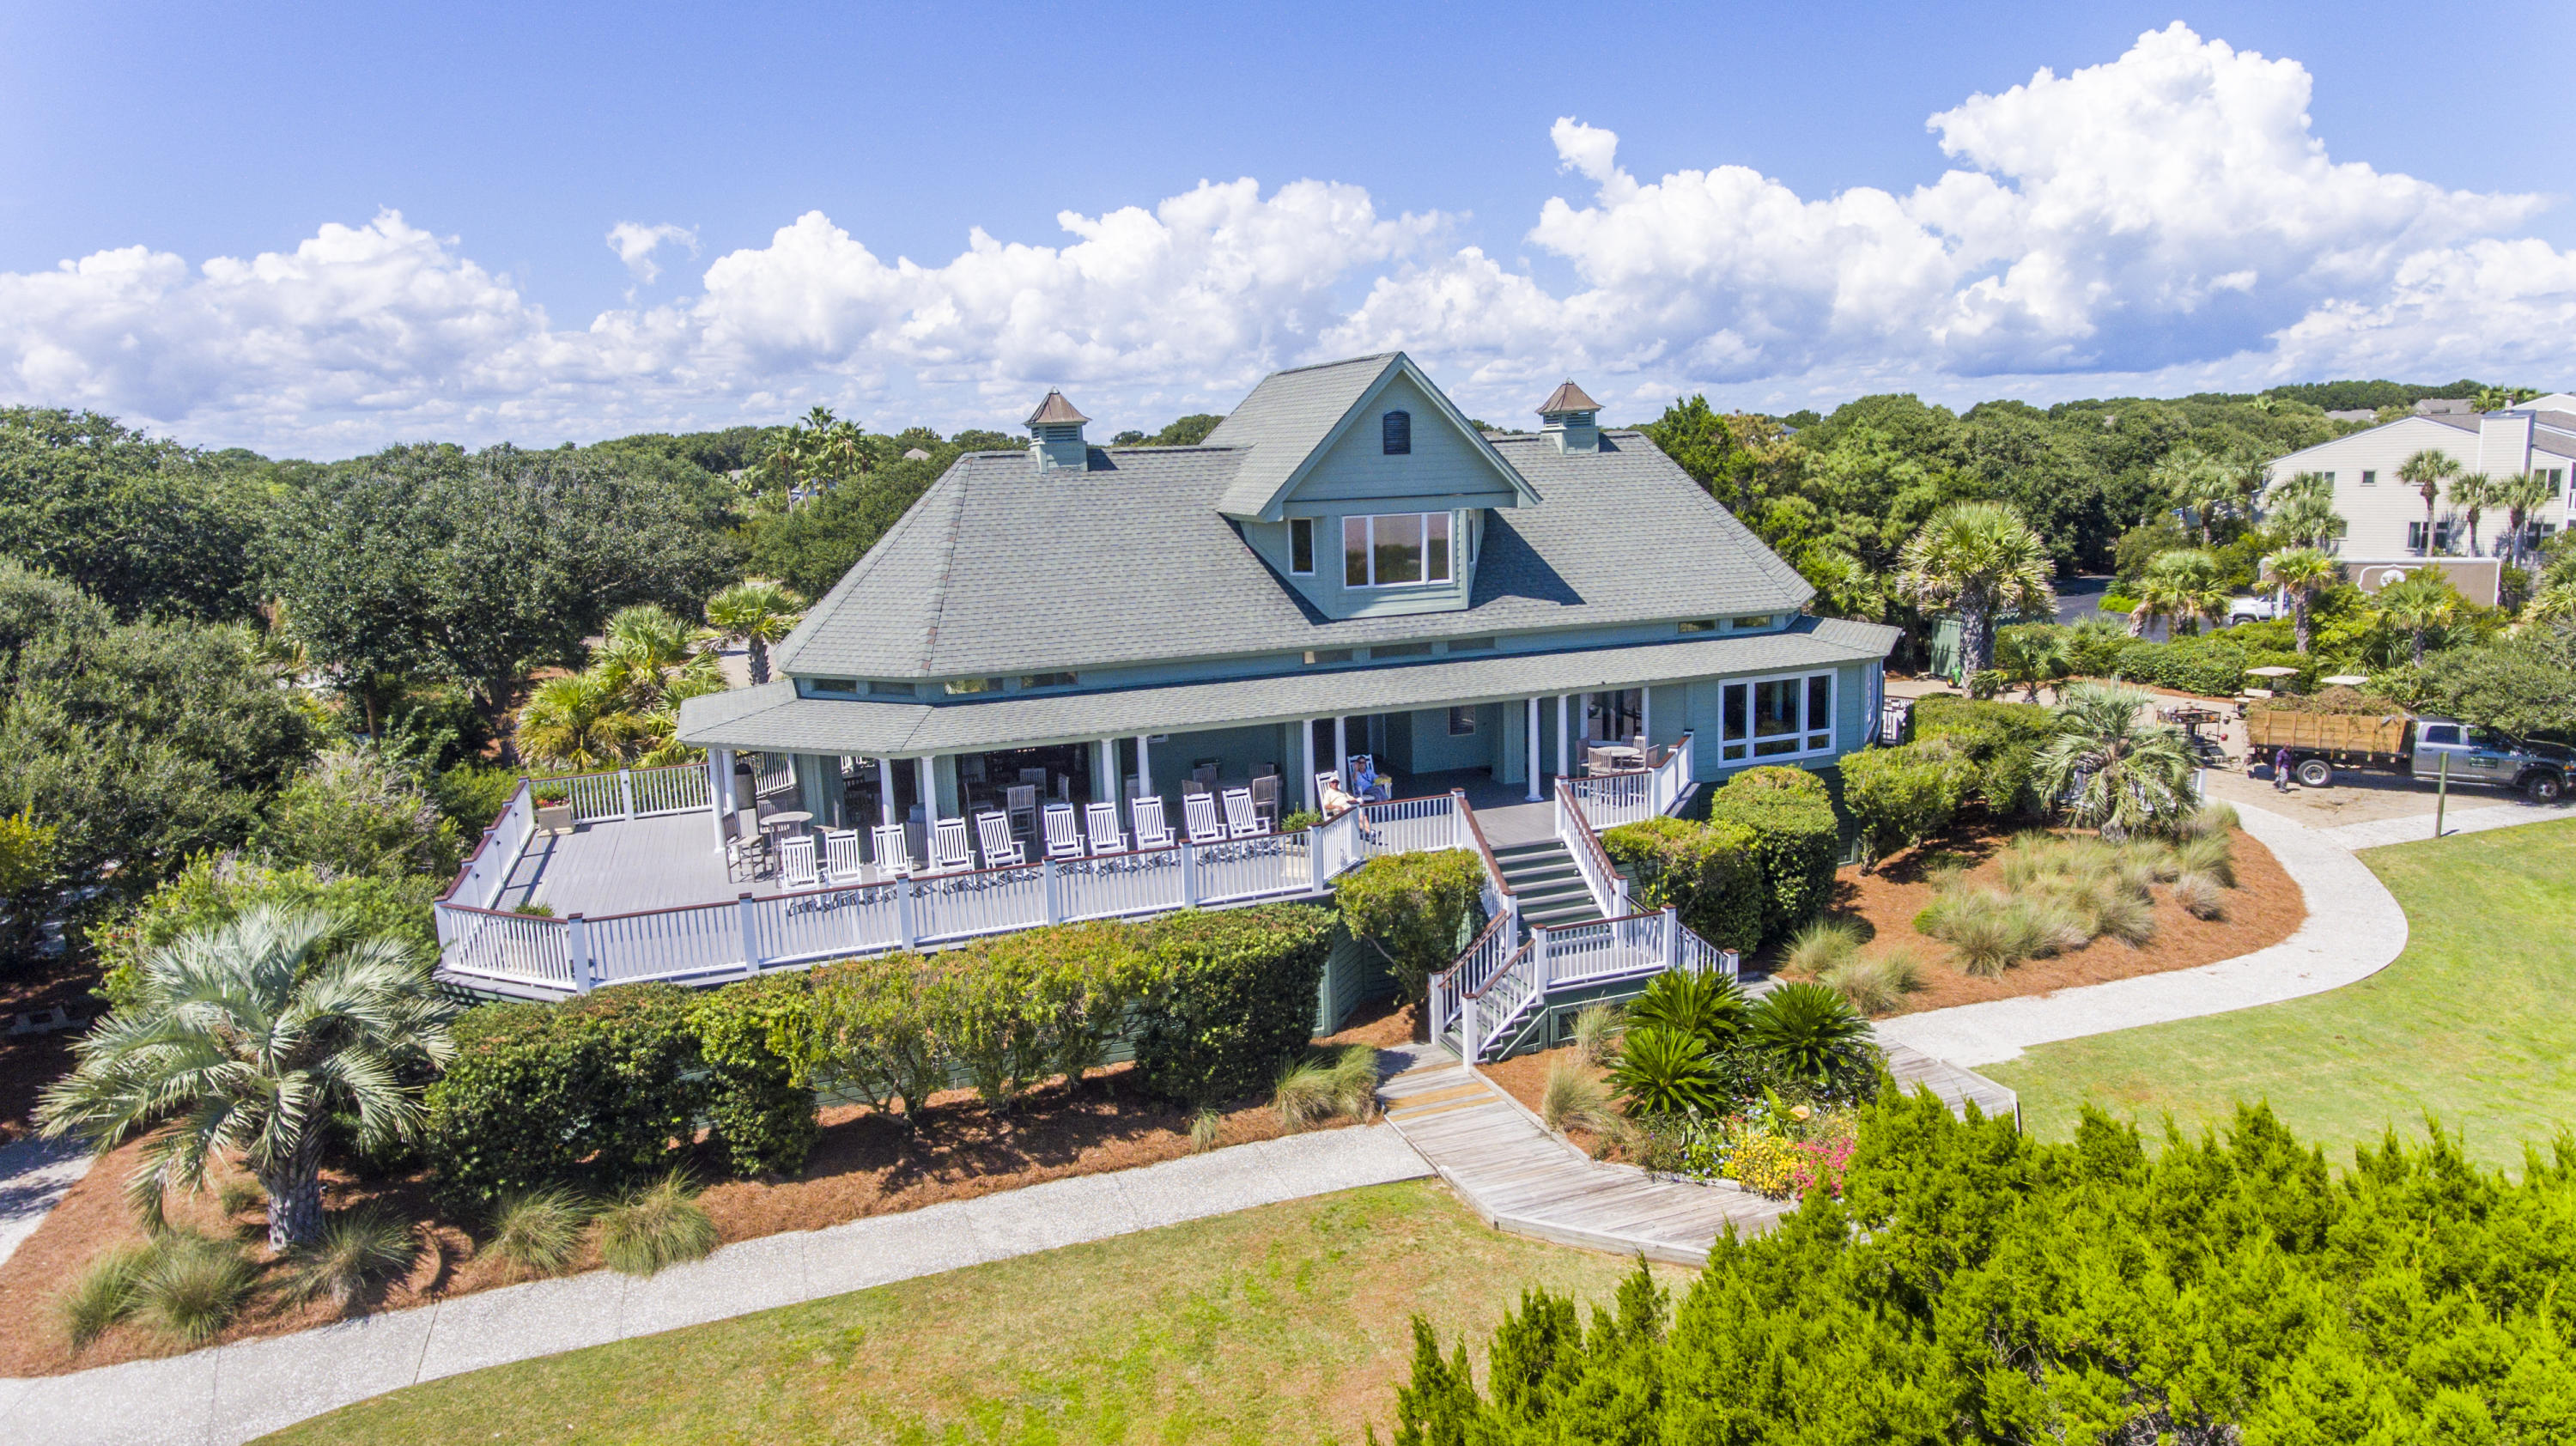 Wild Dunes Homes For Sale - 5-C Mariners Walk, Isle of Palms, SC - 8